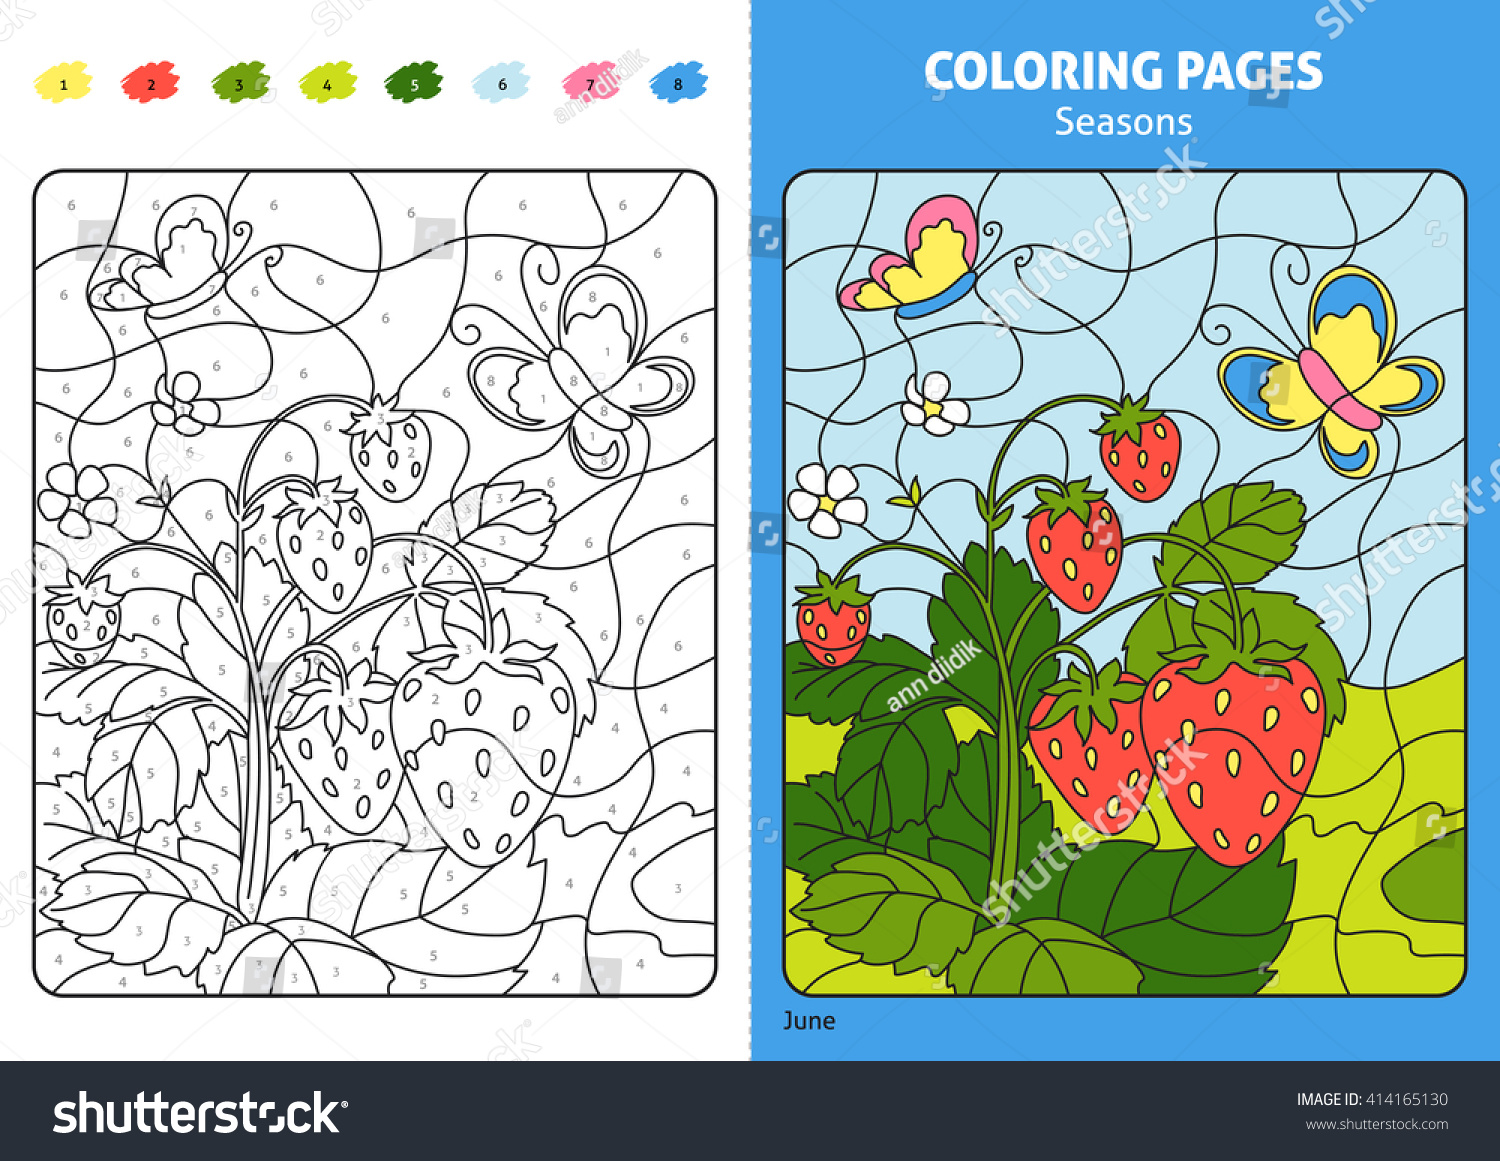 Seasons Coloring Page Kids June Monthprintable Stock Photo (Photo ...